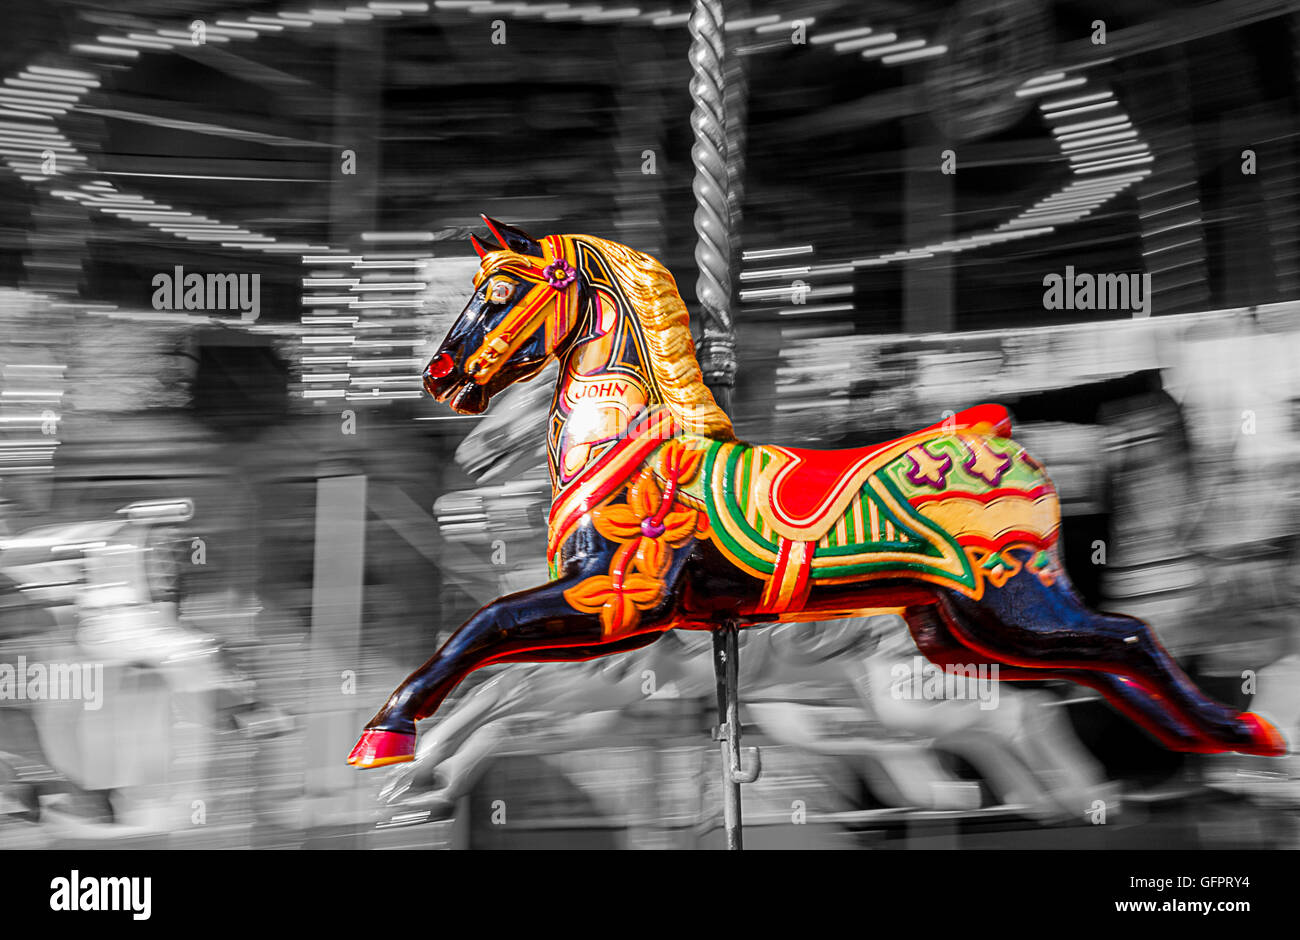 A Carousel Horse In Colour Isolated Against A Black And White Stock Photo Alamy